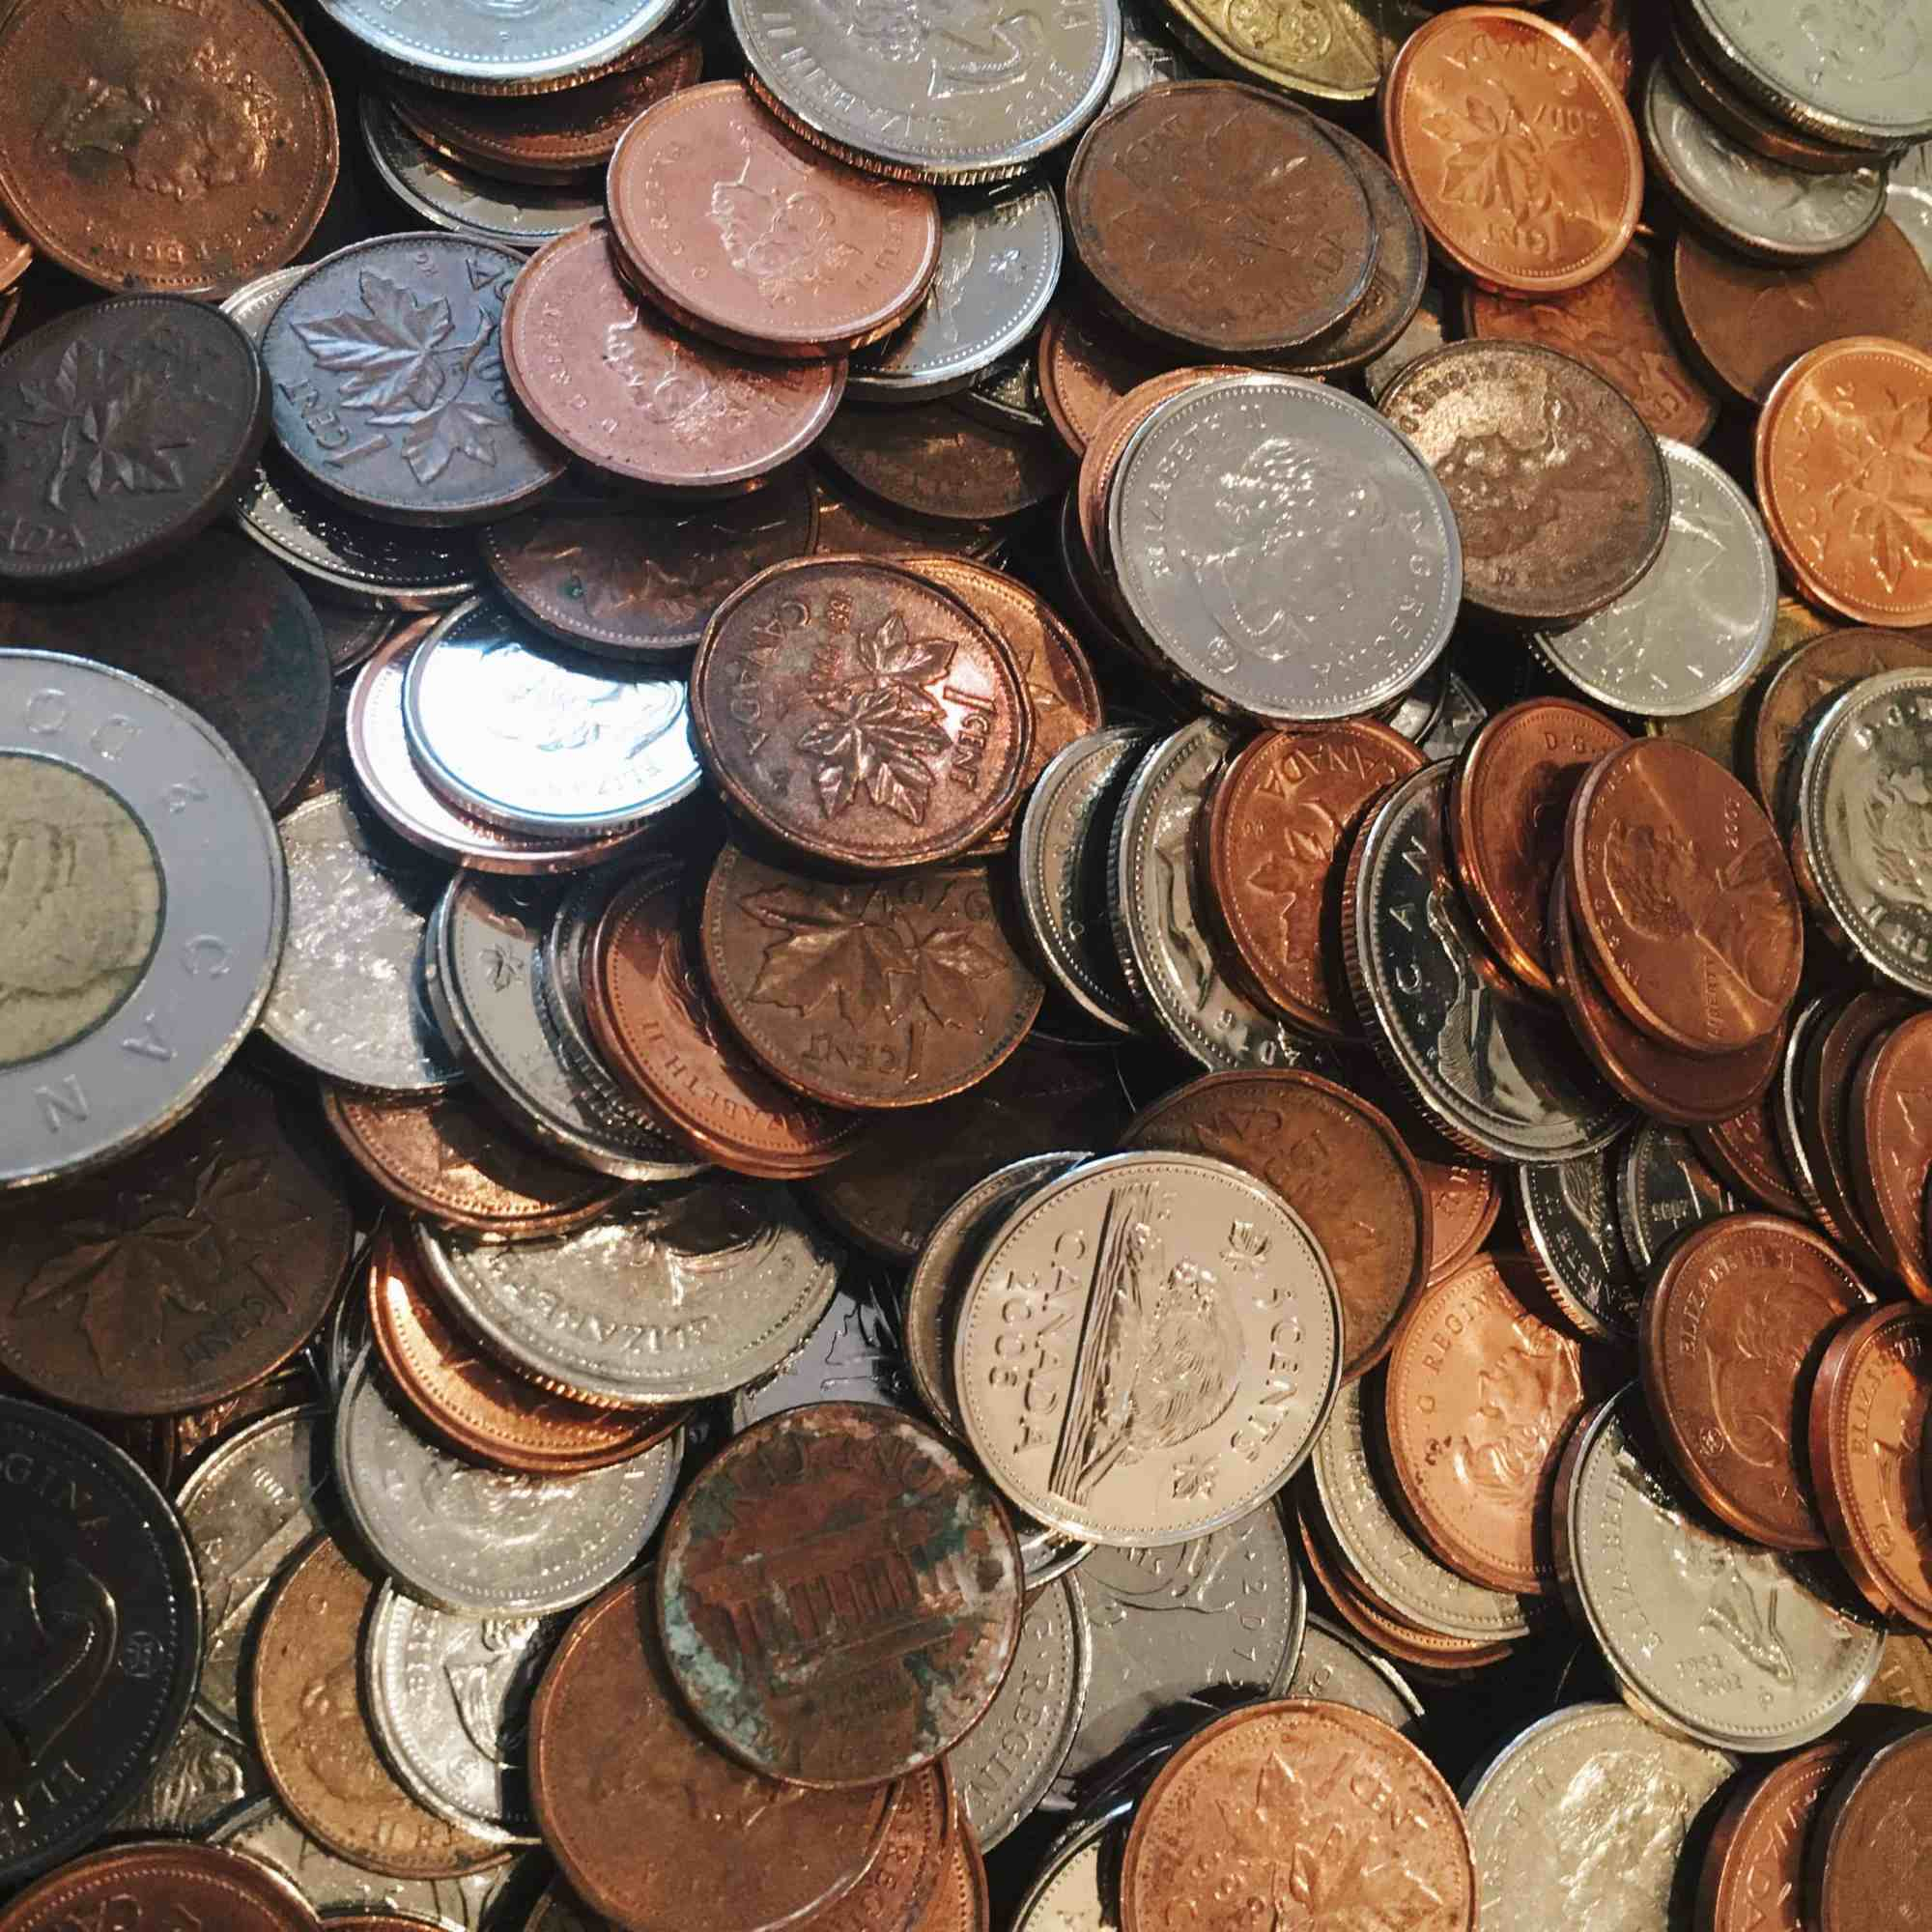 What sort of currency do you need on your international travel?